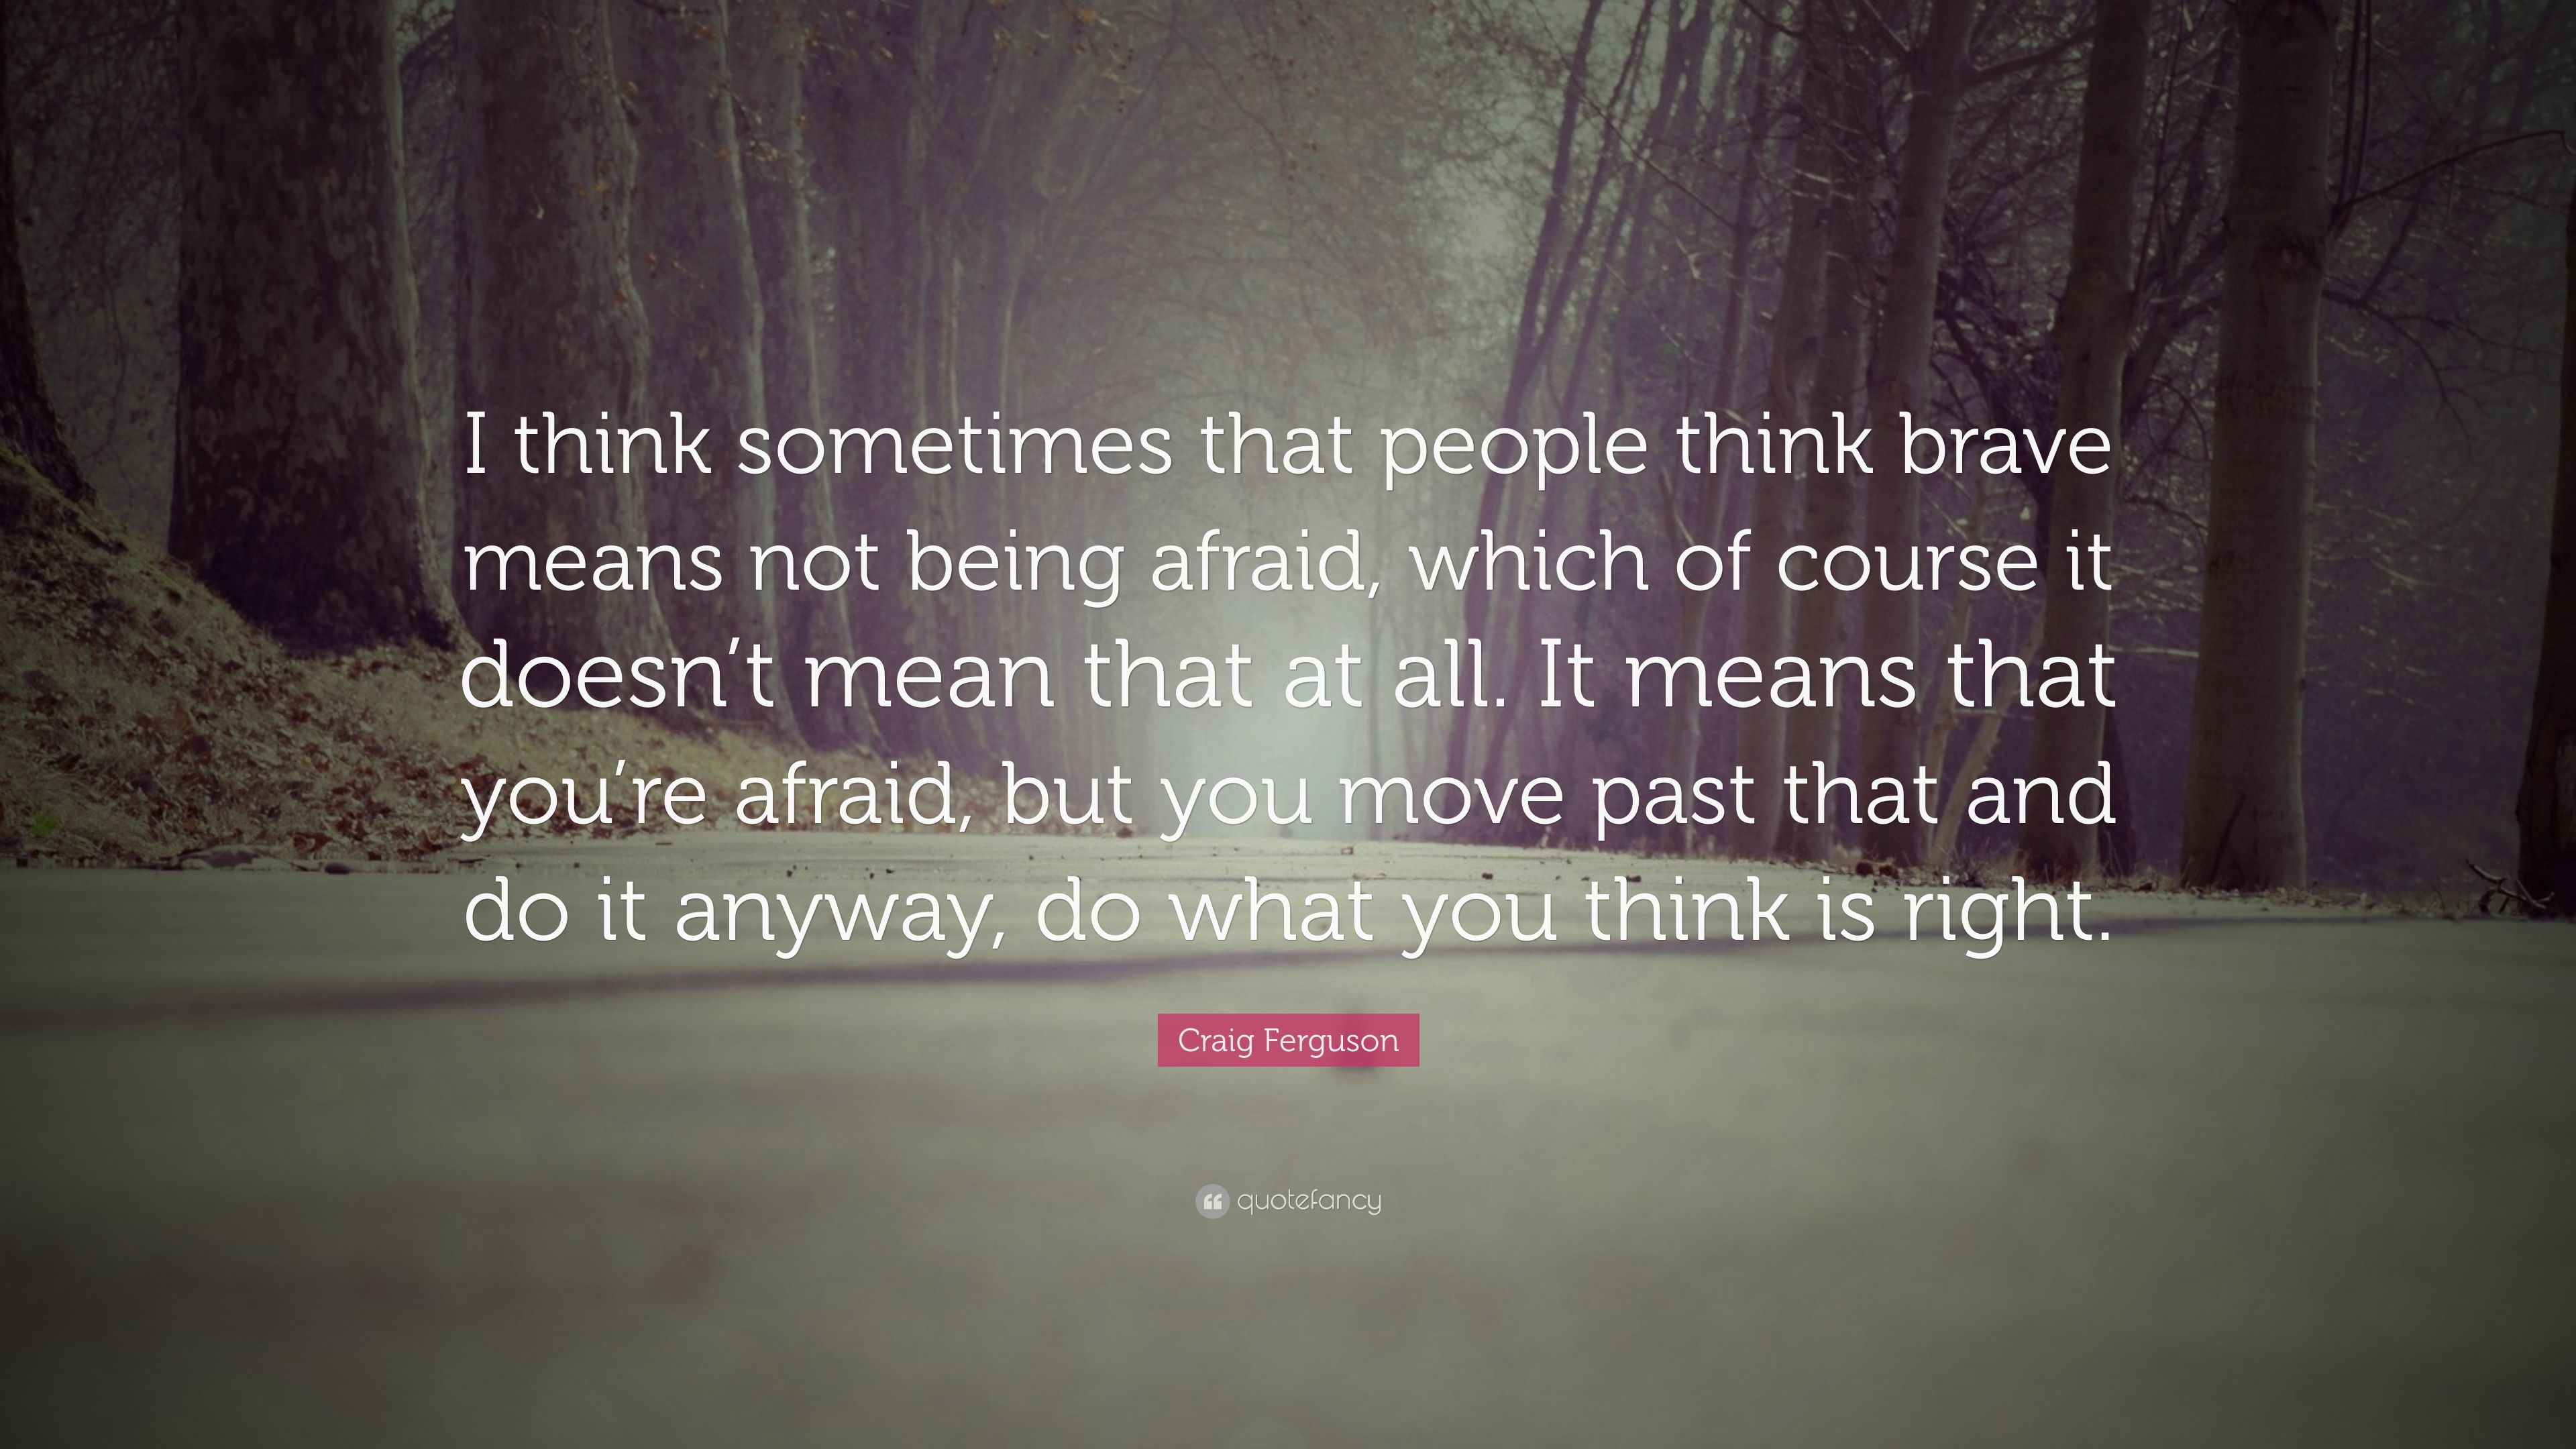 Craig Ferguson Quote: U201cI Think Sometimes That People Think Brave Means Not  Being Afraid